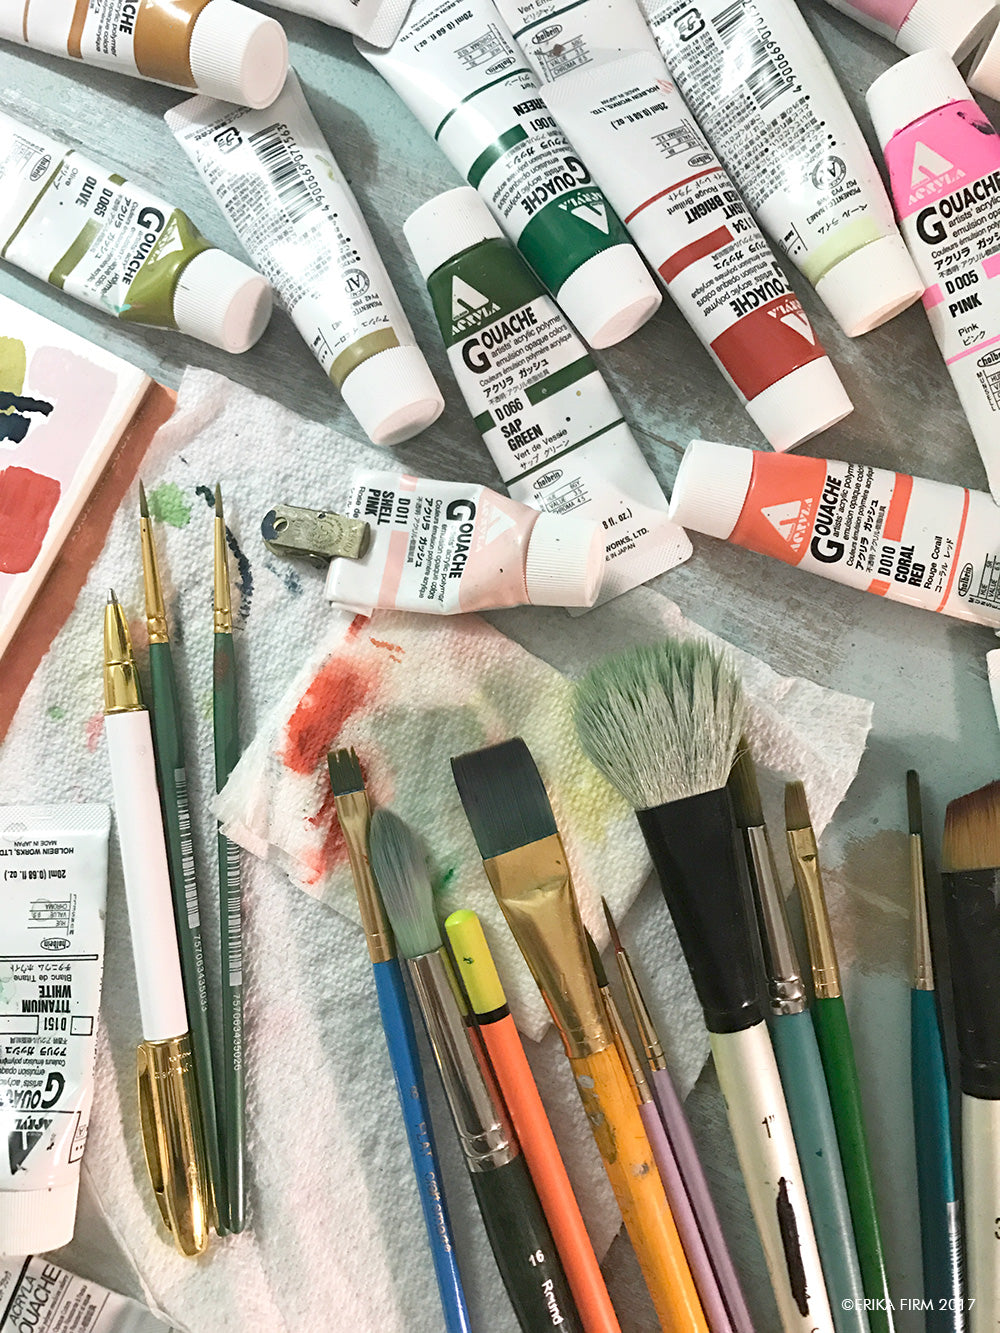 Behind the scenes at Erika Firm studio paint and brushes